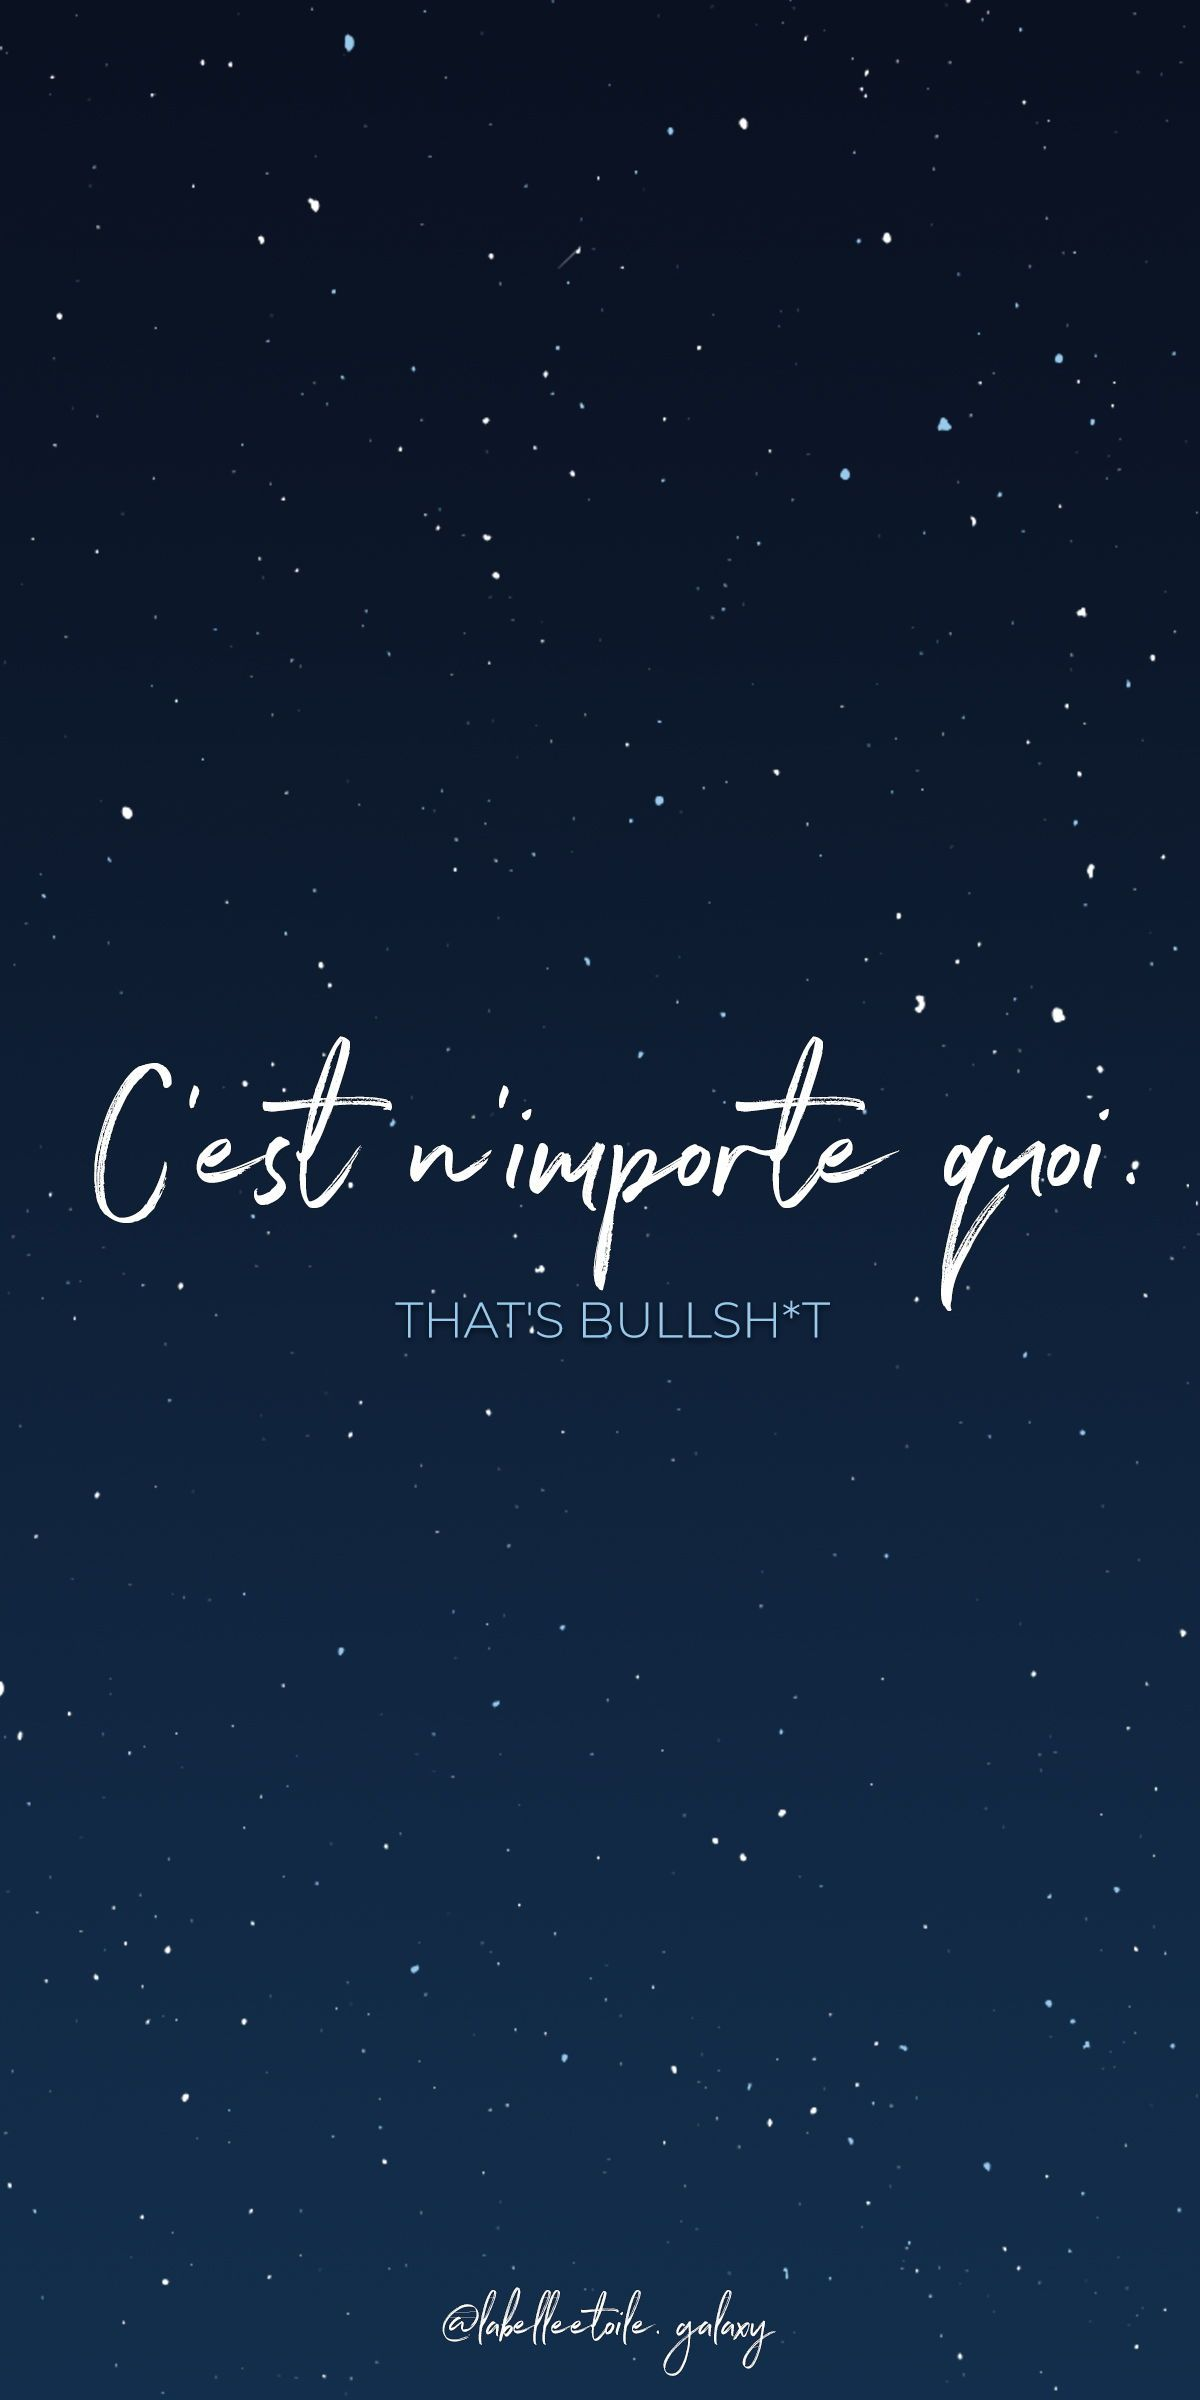 C Est N Importe Quoi : importe, C'est, N'importe, That's, Bullsh*t, Bonjour, Right, Learn, French, Quotes,, Words, Proverbs